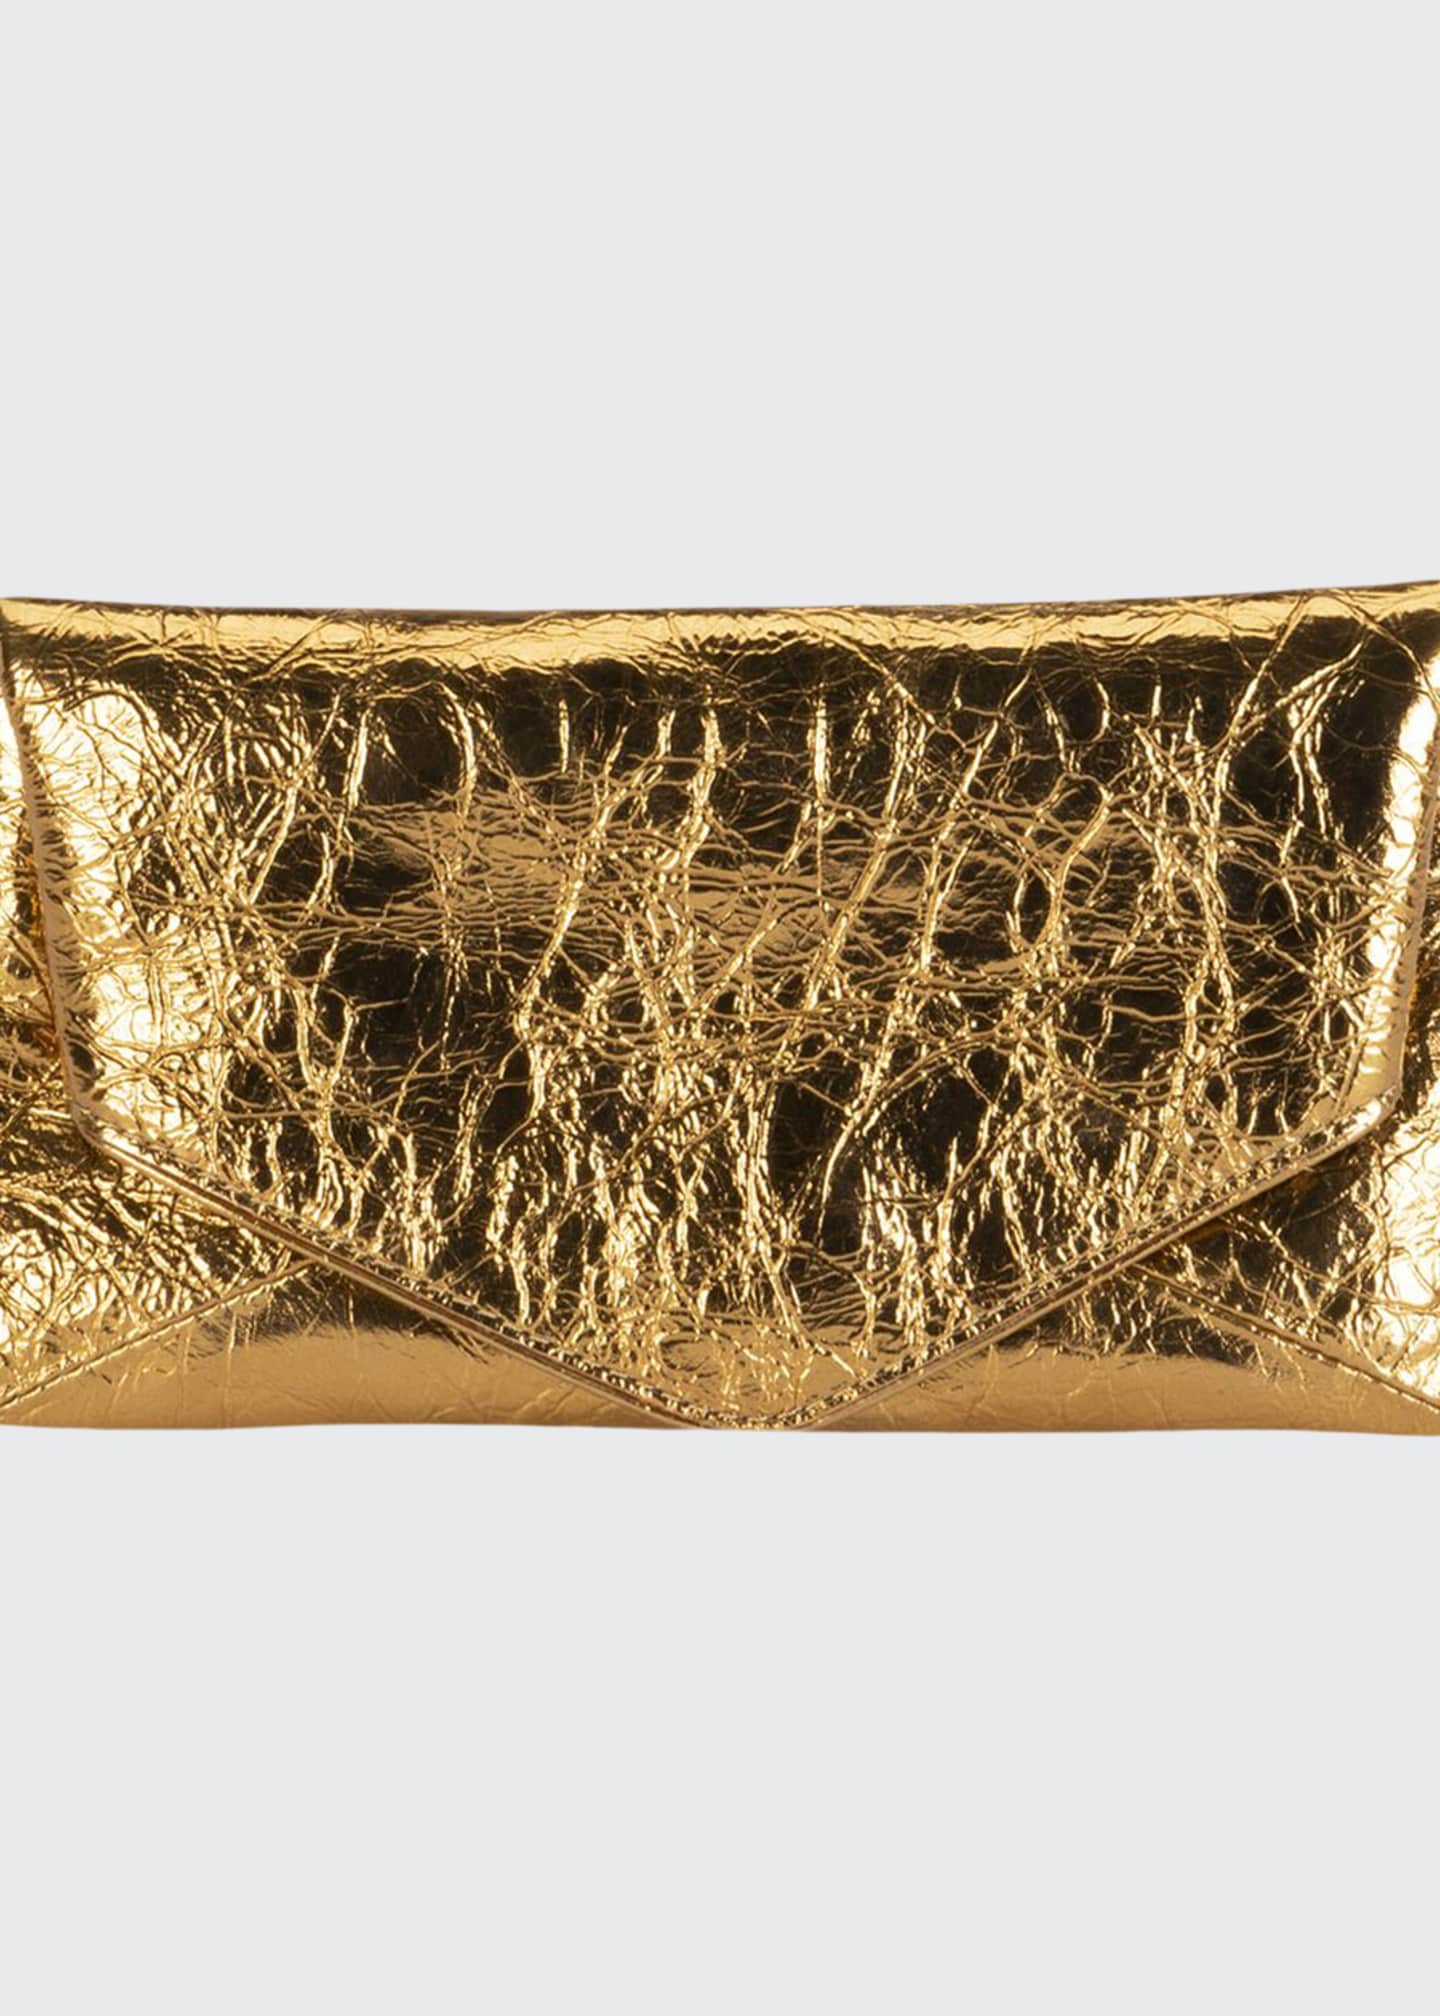 Dries Van Noten Small Metallic Envelope Clutch Bag